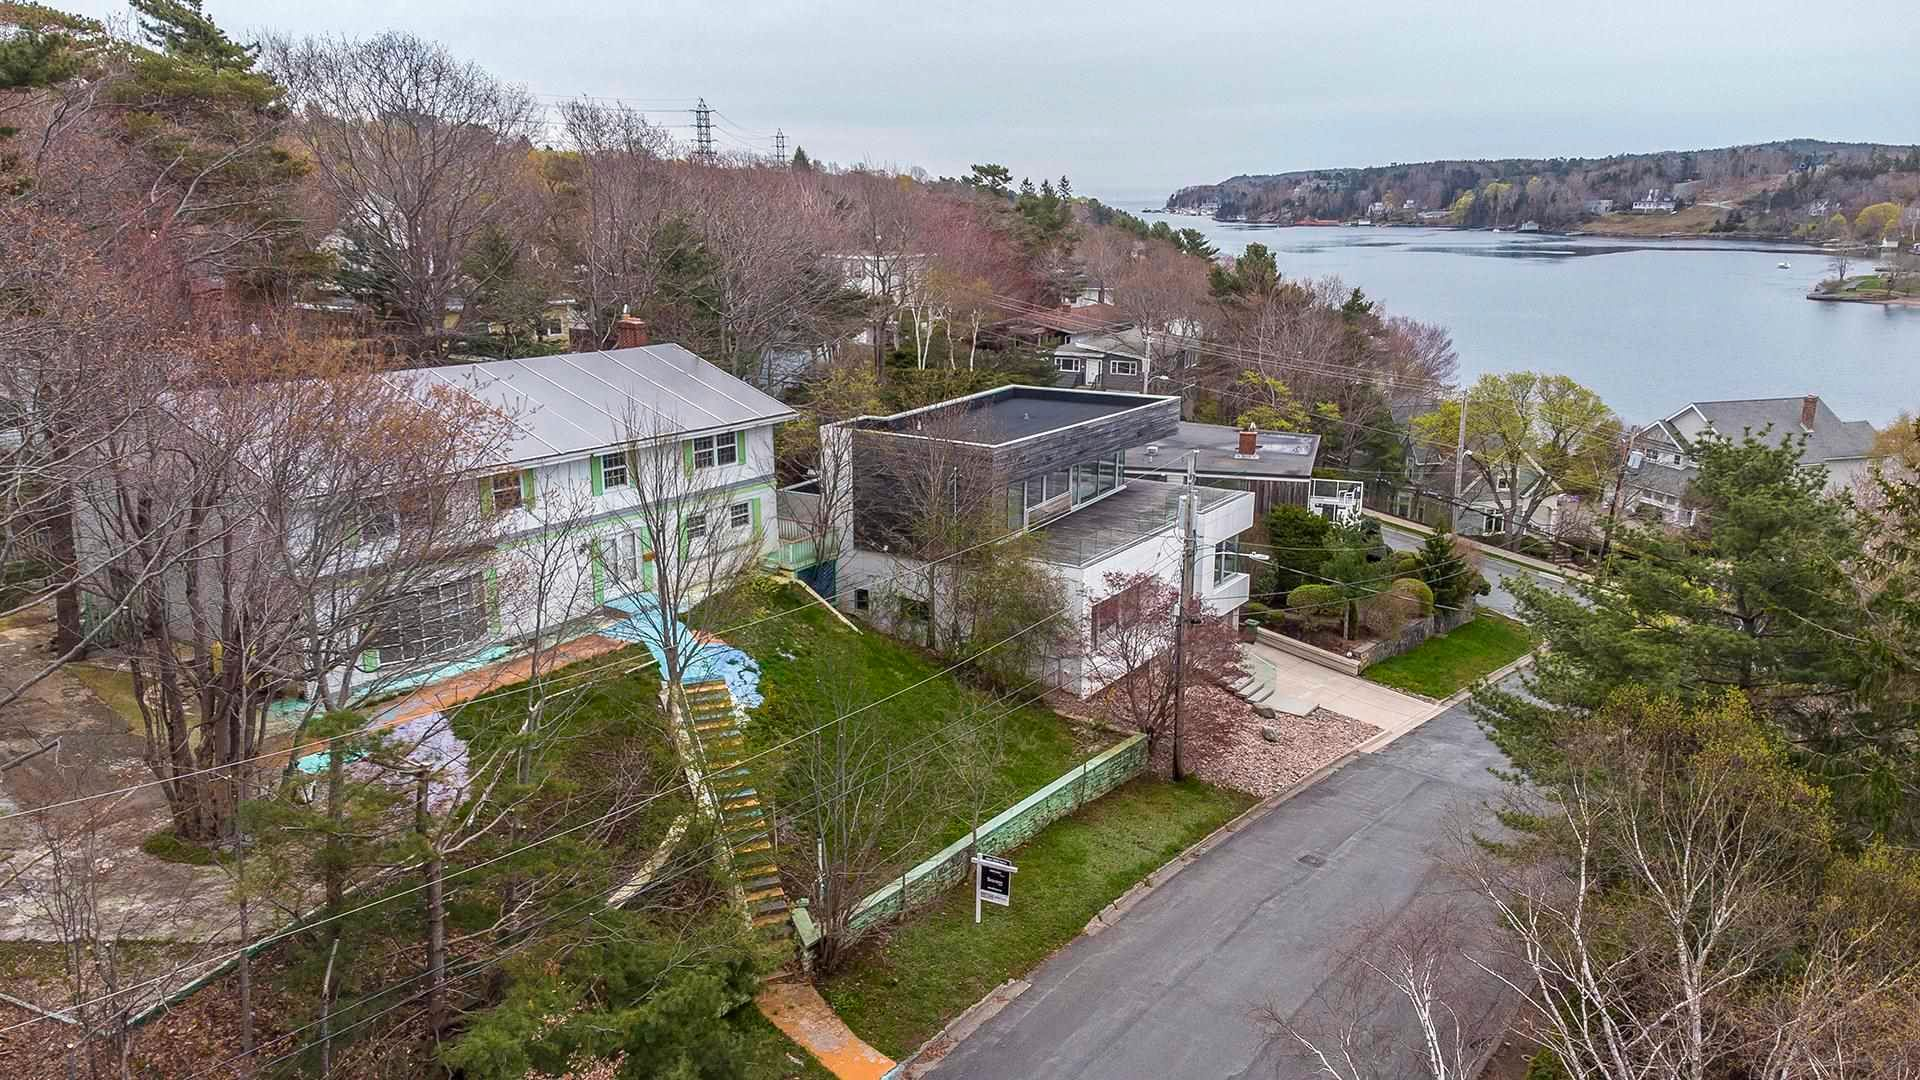 Main Photo: 1225 Webster Terrace in Halifax: 2-Halifax South Residential for sale (Halifax-Dartmouth)  : MLS®# 202111505